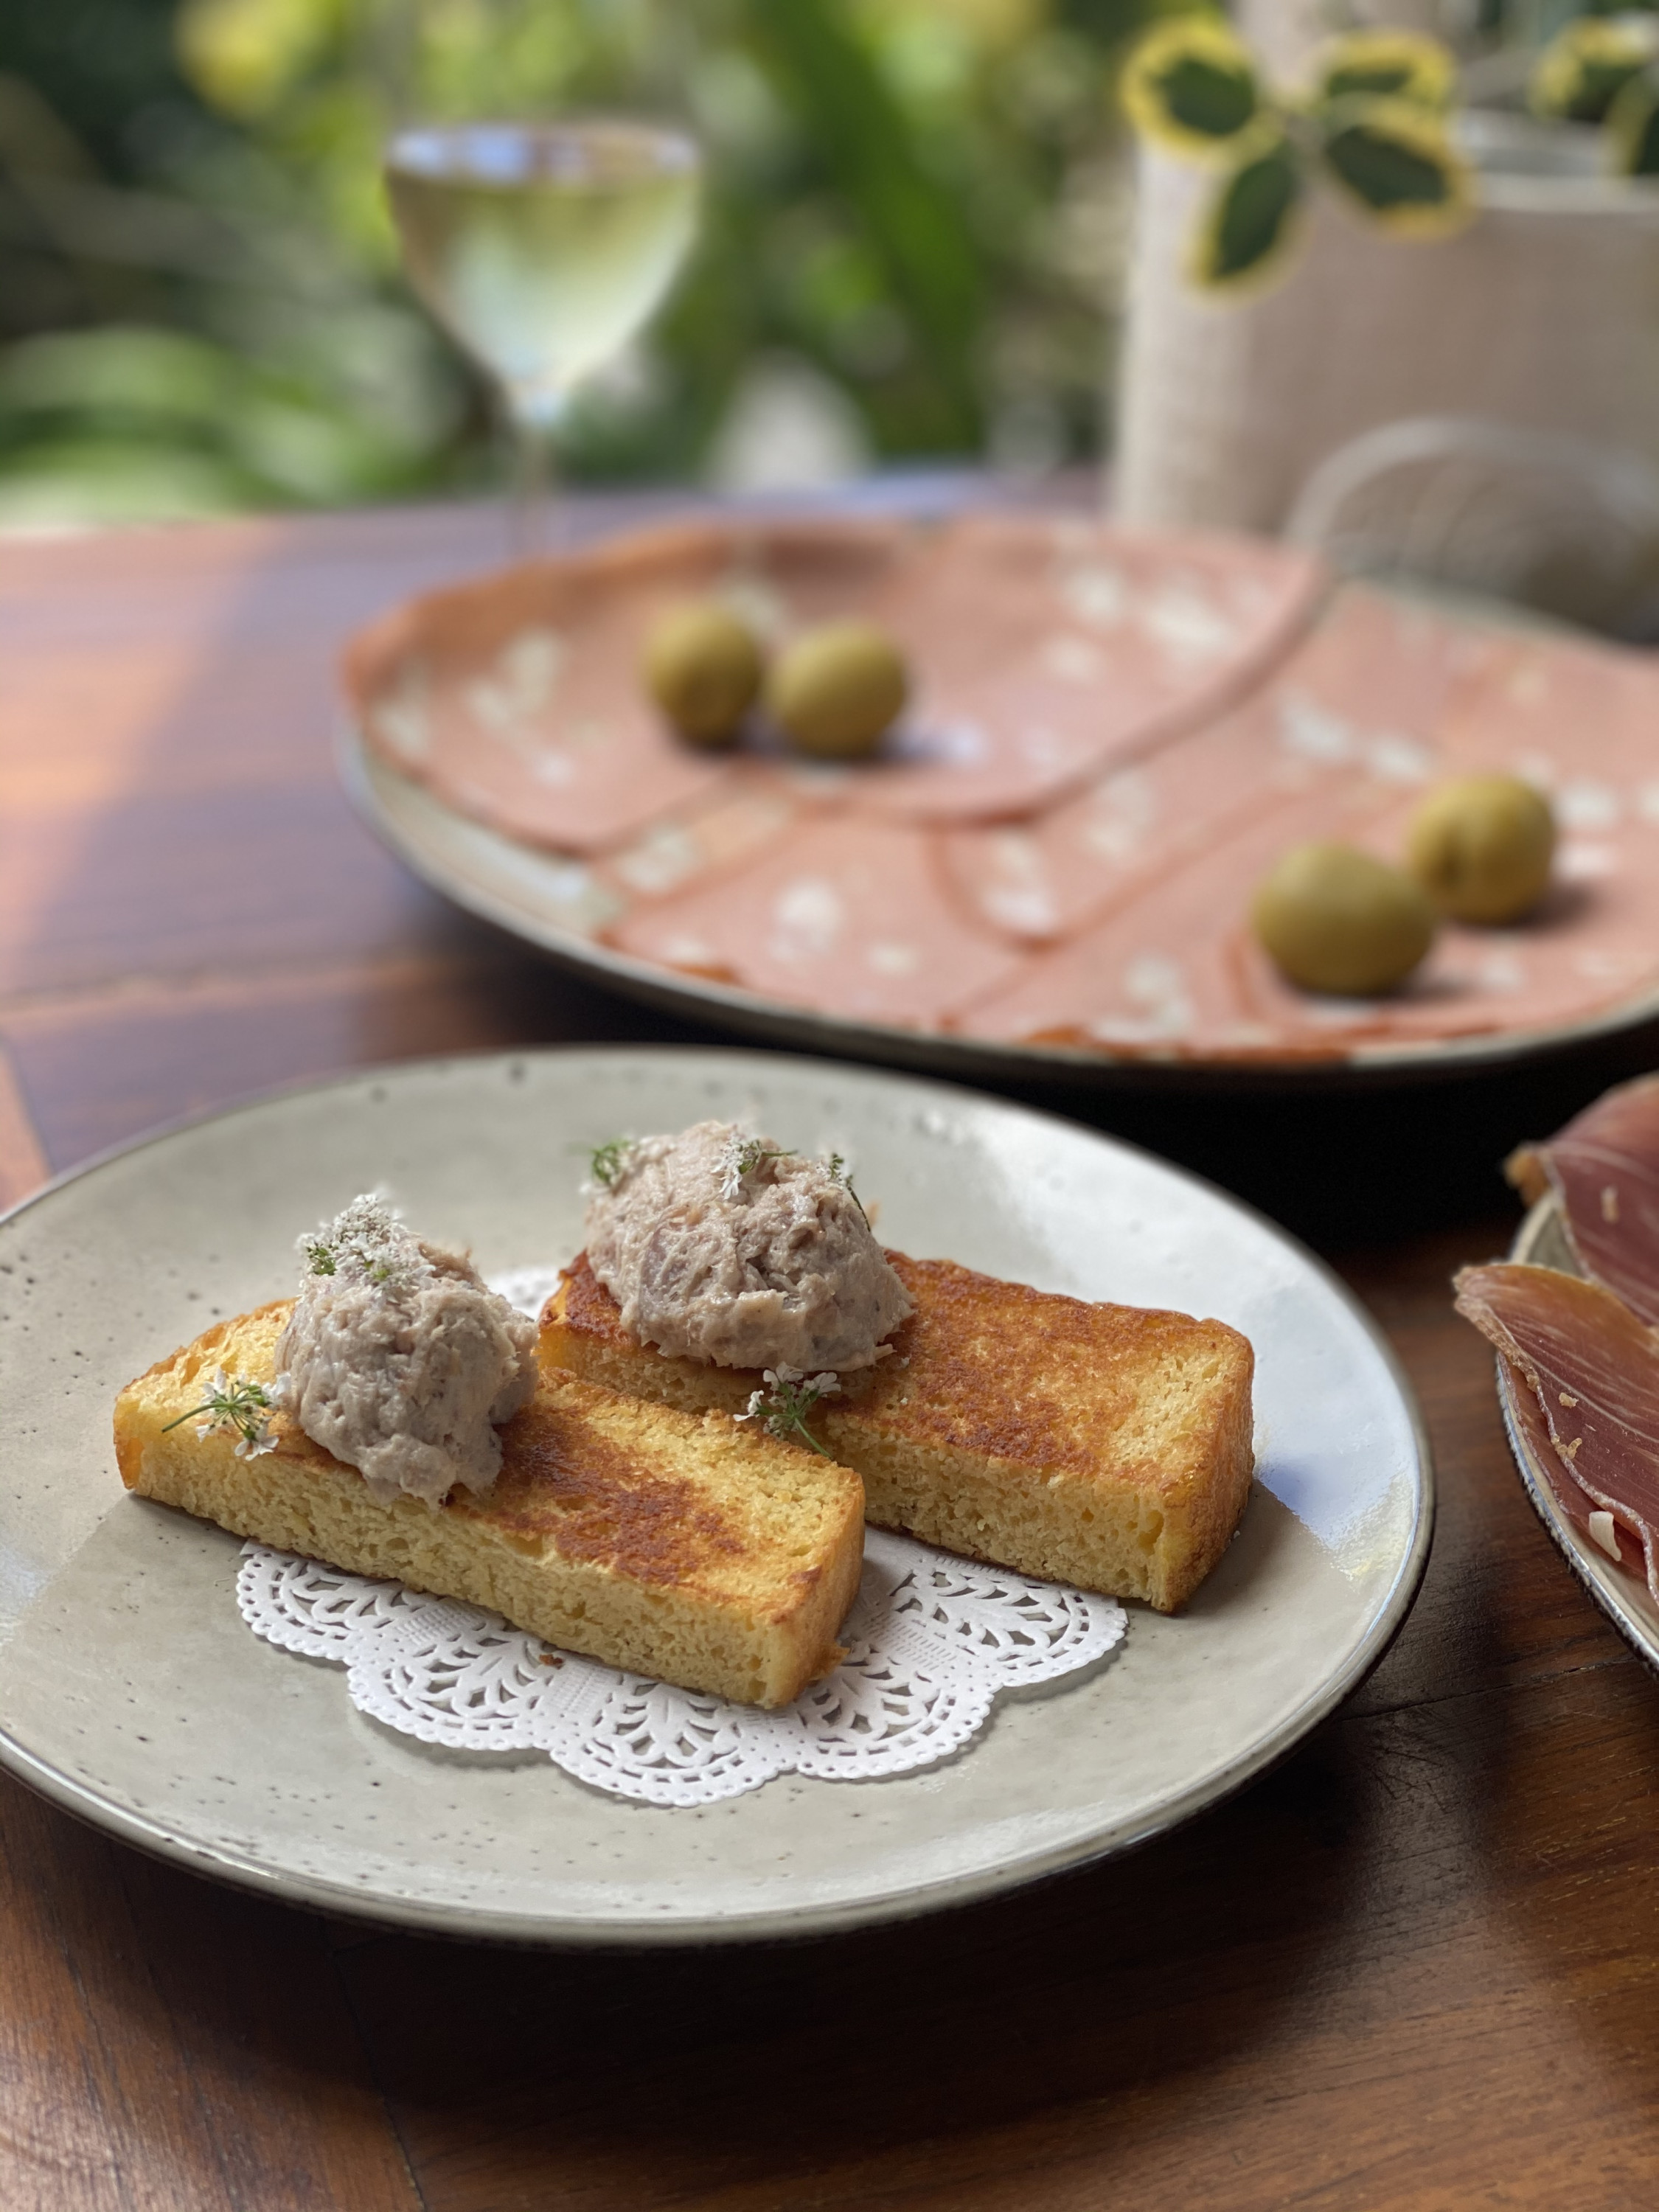 a pork rilette dish with a wine glass in the background